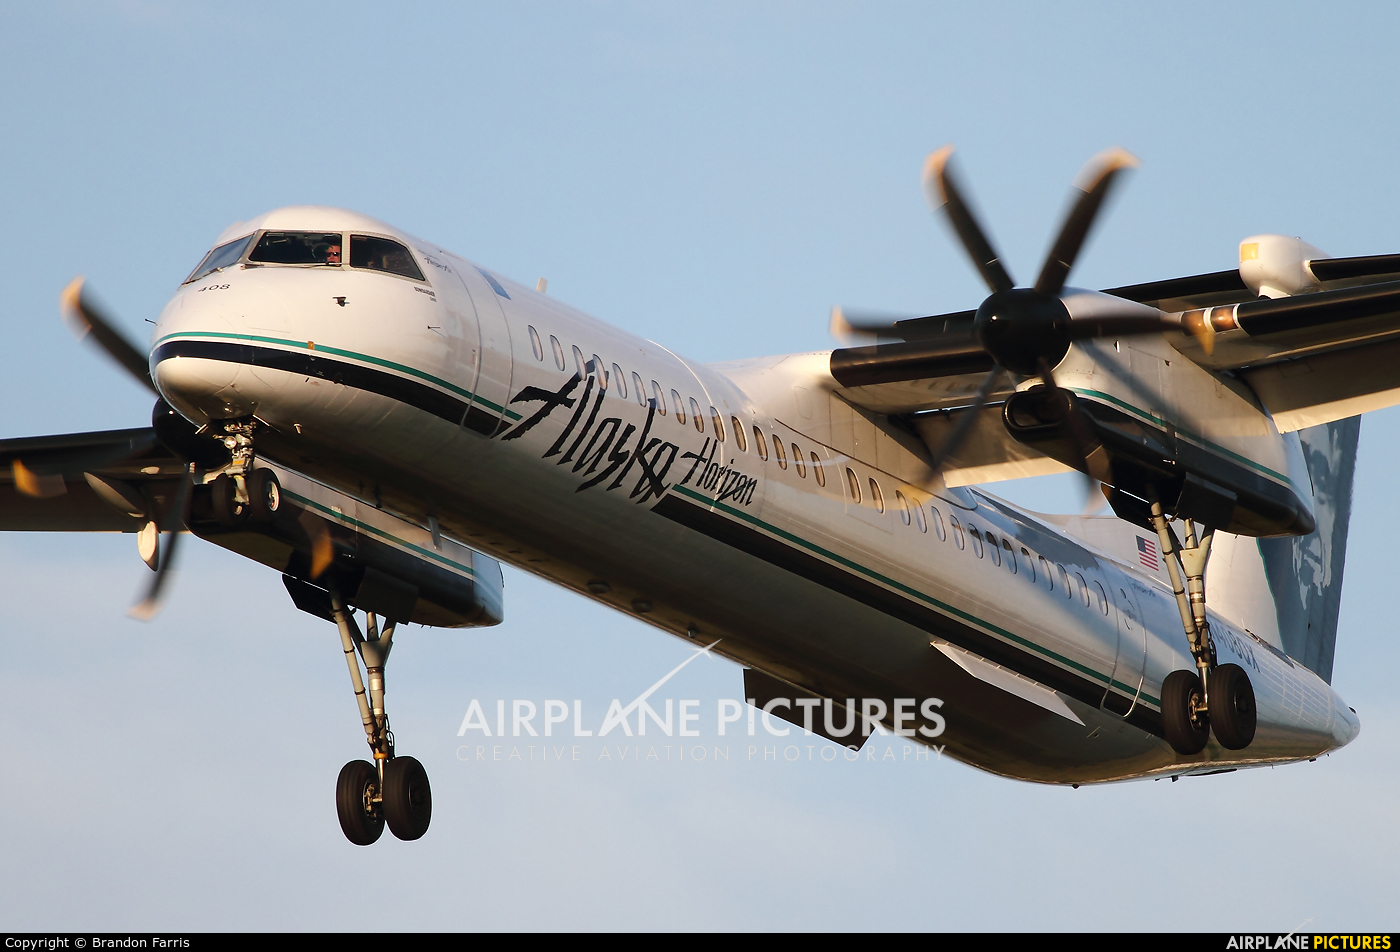 Alaska Airlines - Horizon Air N408QX aircraft at Portland